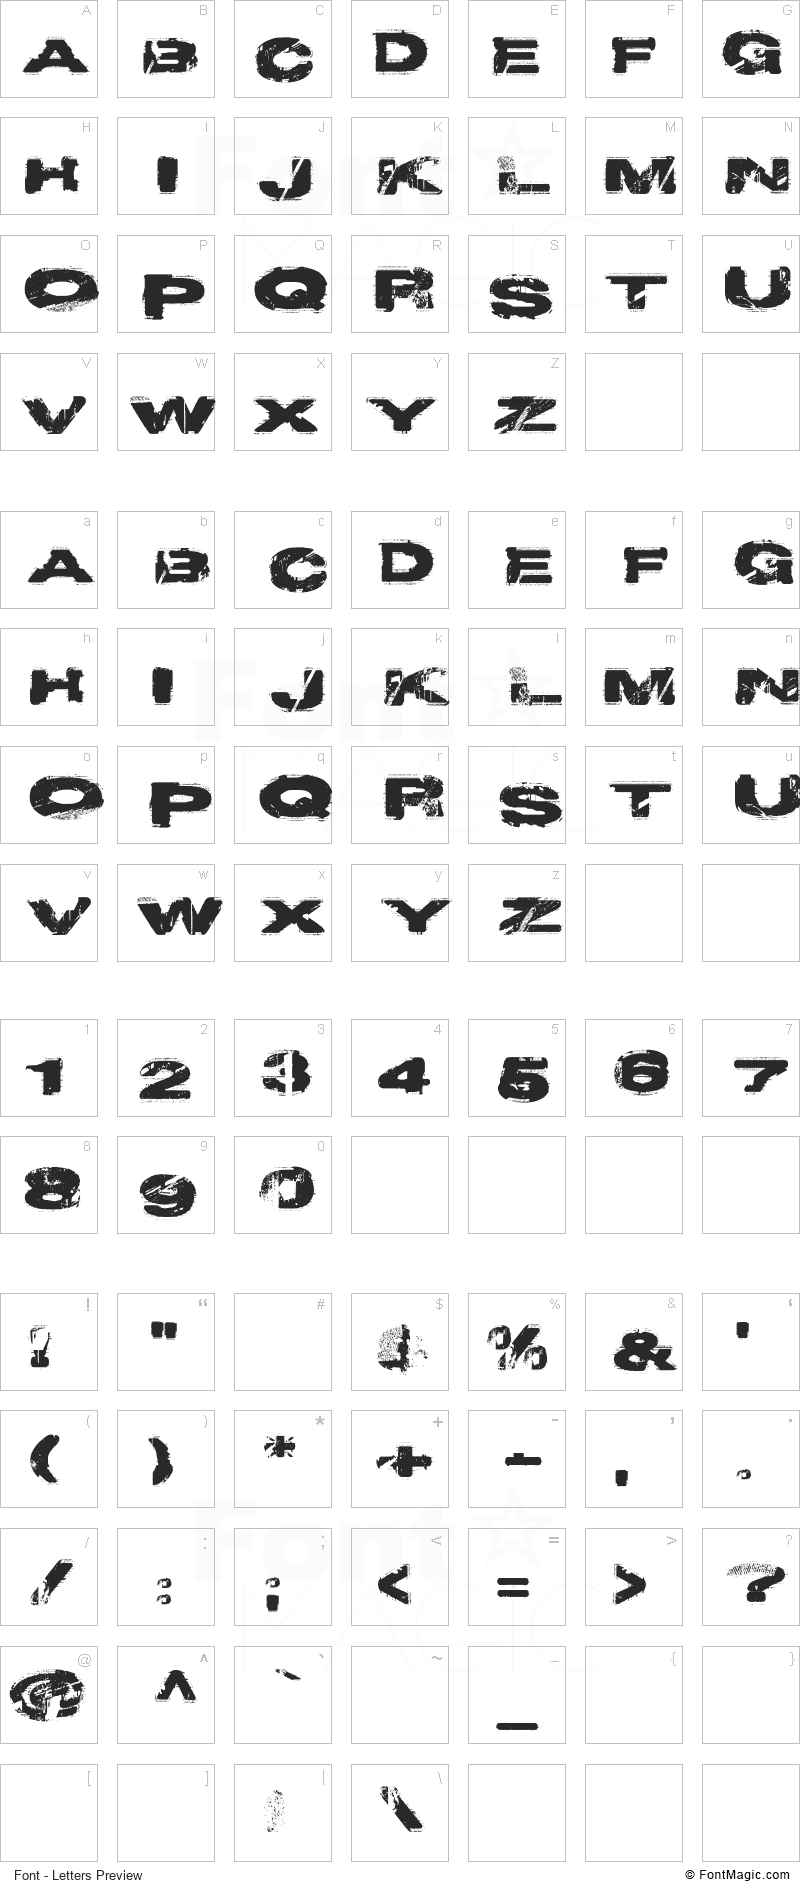 Project Y Font - All Latters Preview Chart